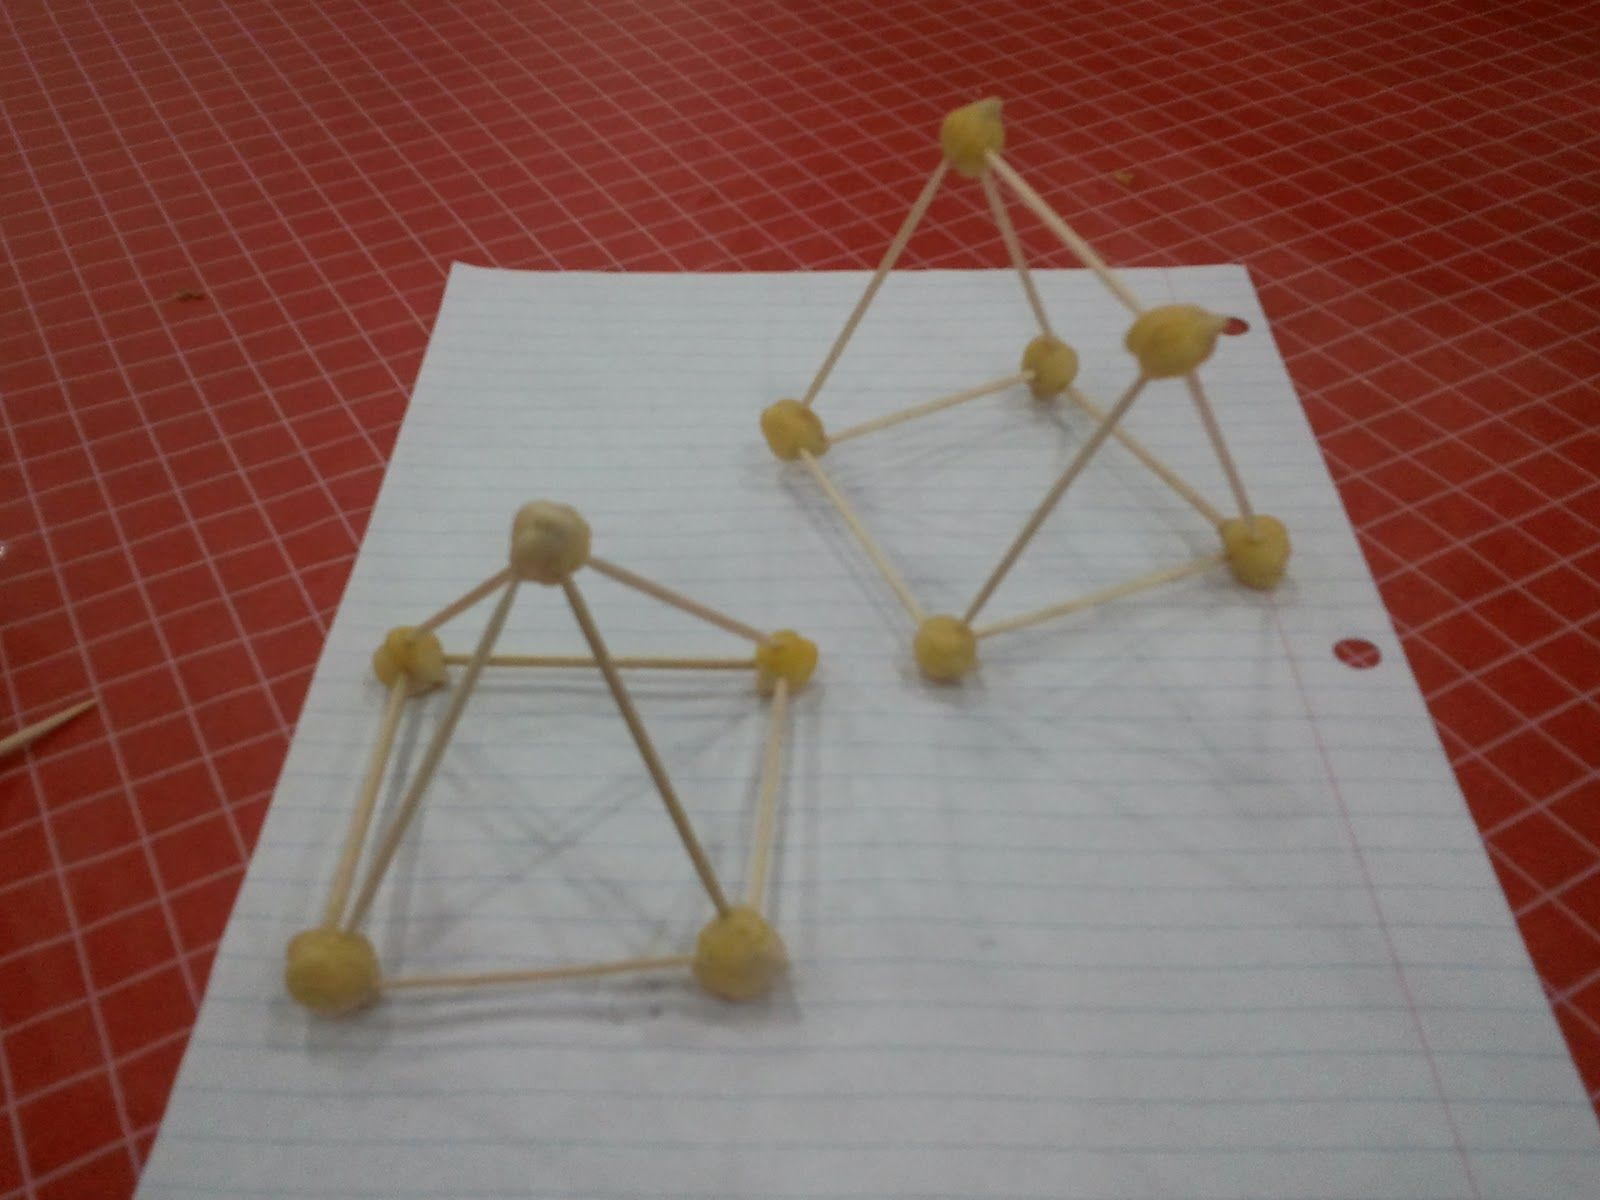 111 7 6 Geometry And Measurement A Recognize A Cube